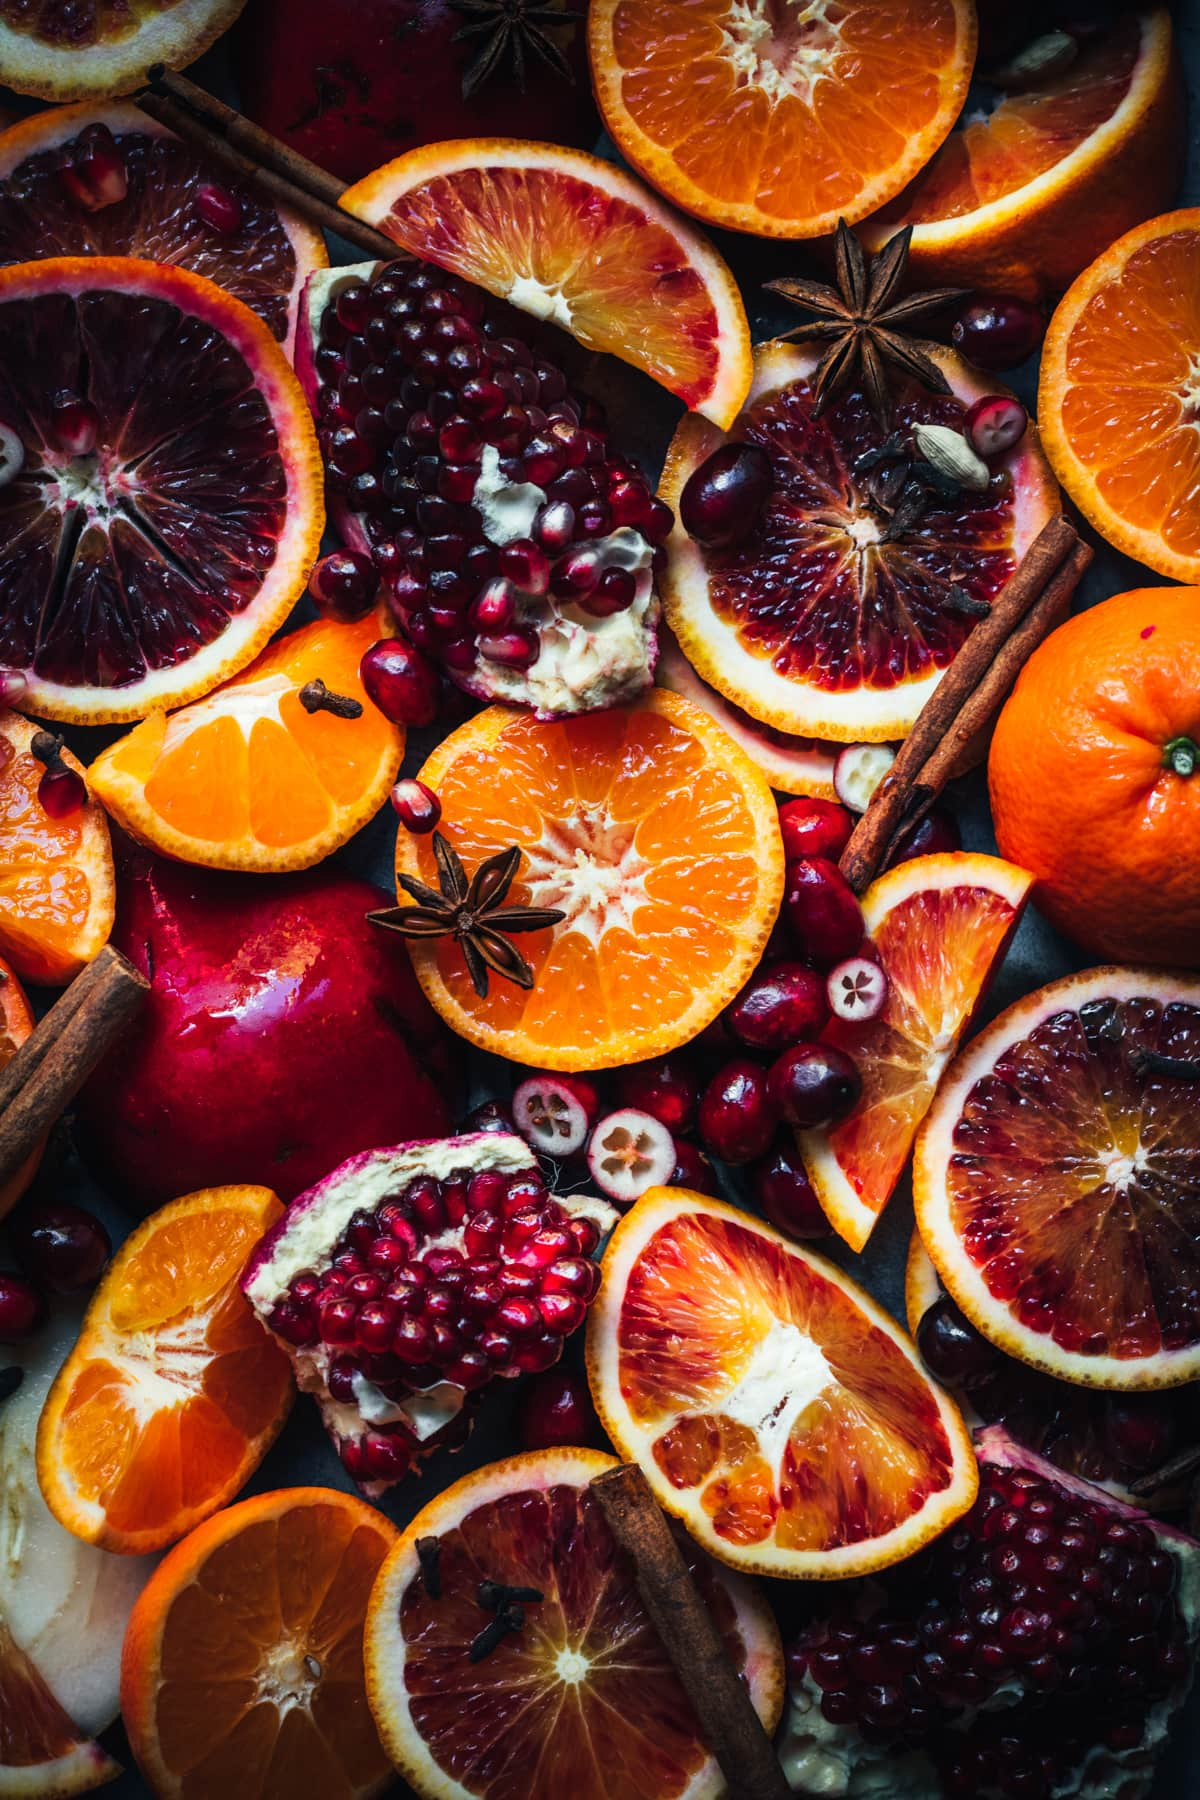 close up overhead view of ingredients for mulled wine, including citrus slices, pomegranate, cranberries and whole spices.